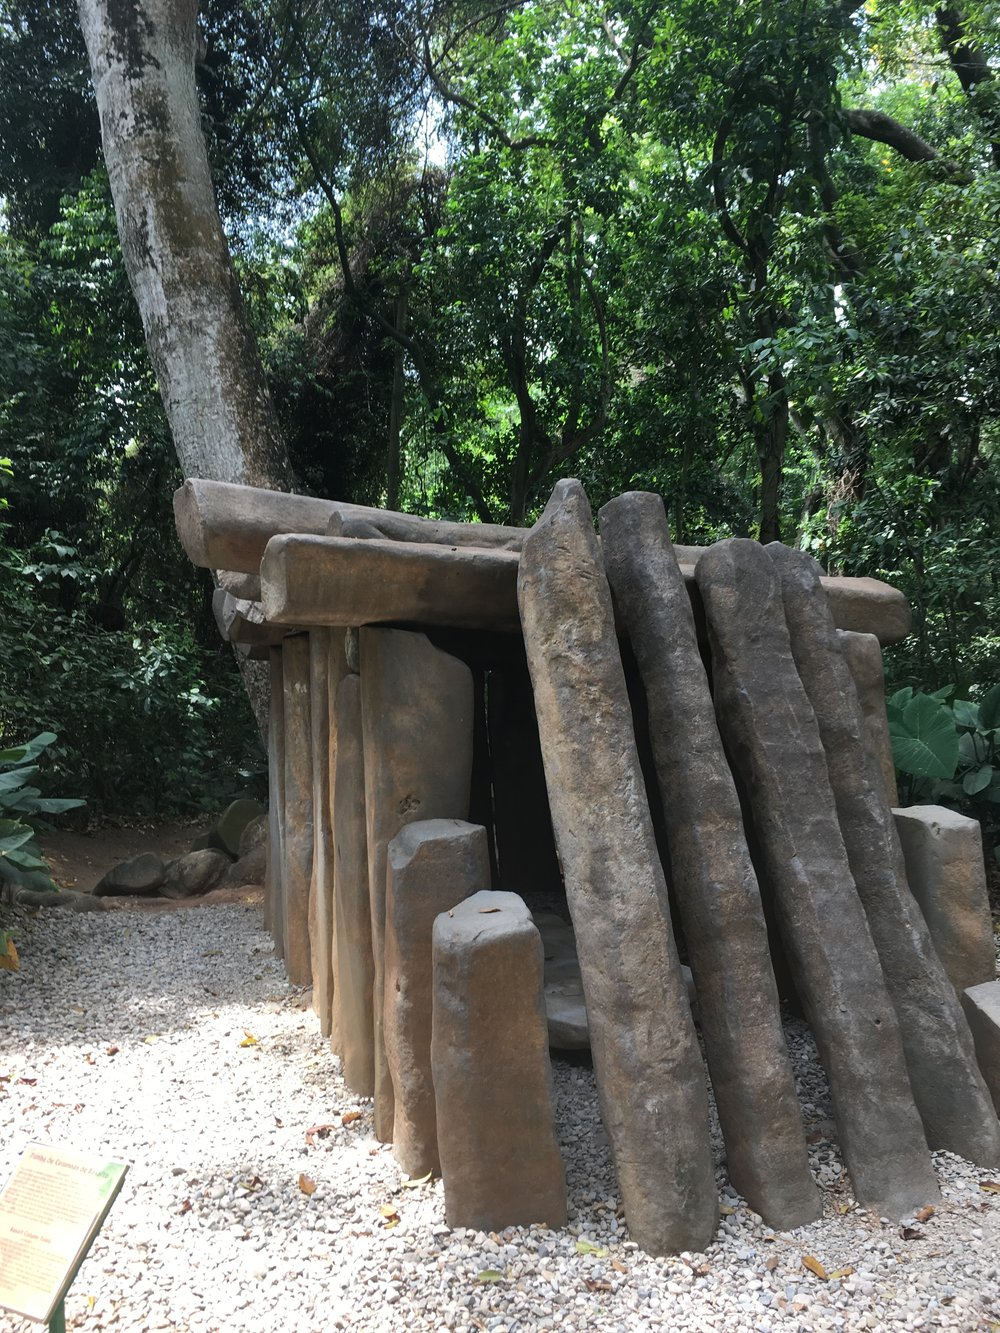 The Olmec burial at La Venta. Left: Altar 5 (back side) at La Venta.